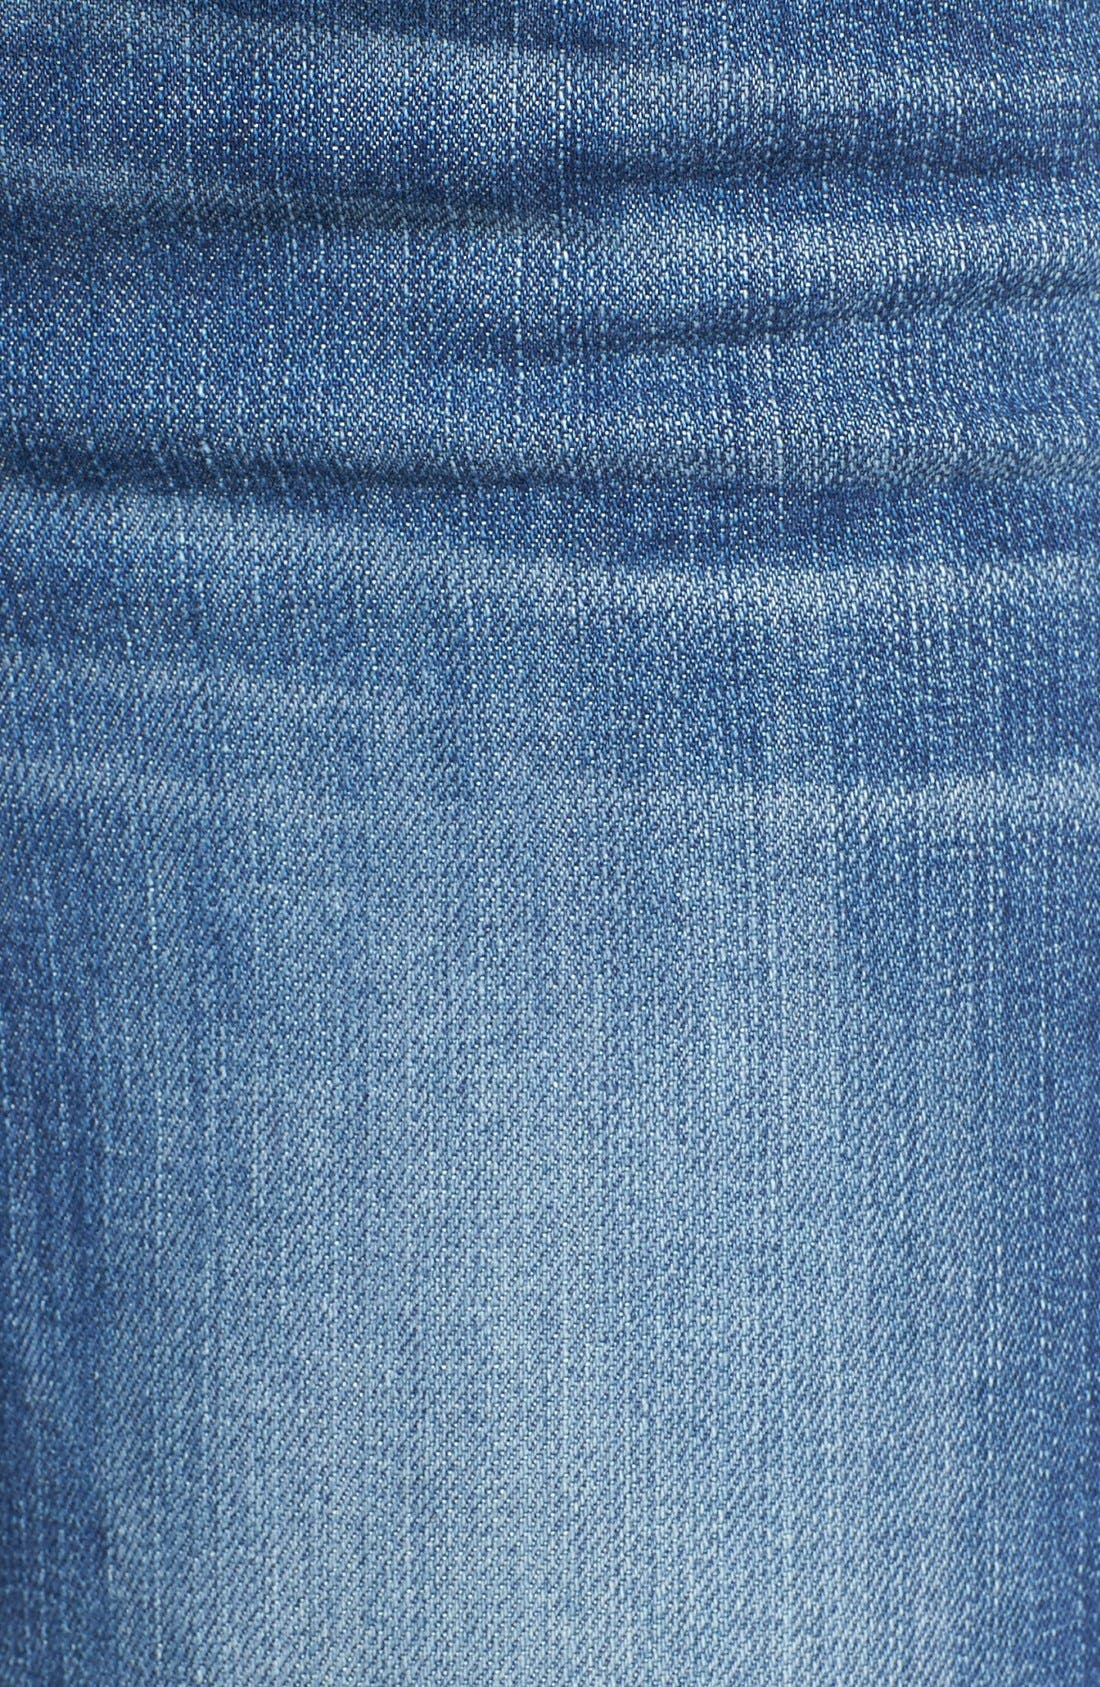 'Diana' Stretch Skinny Jeans,                             Alternate thumbnail 4, color,                             402